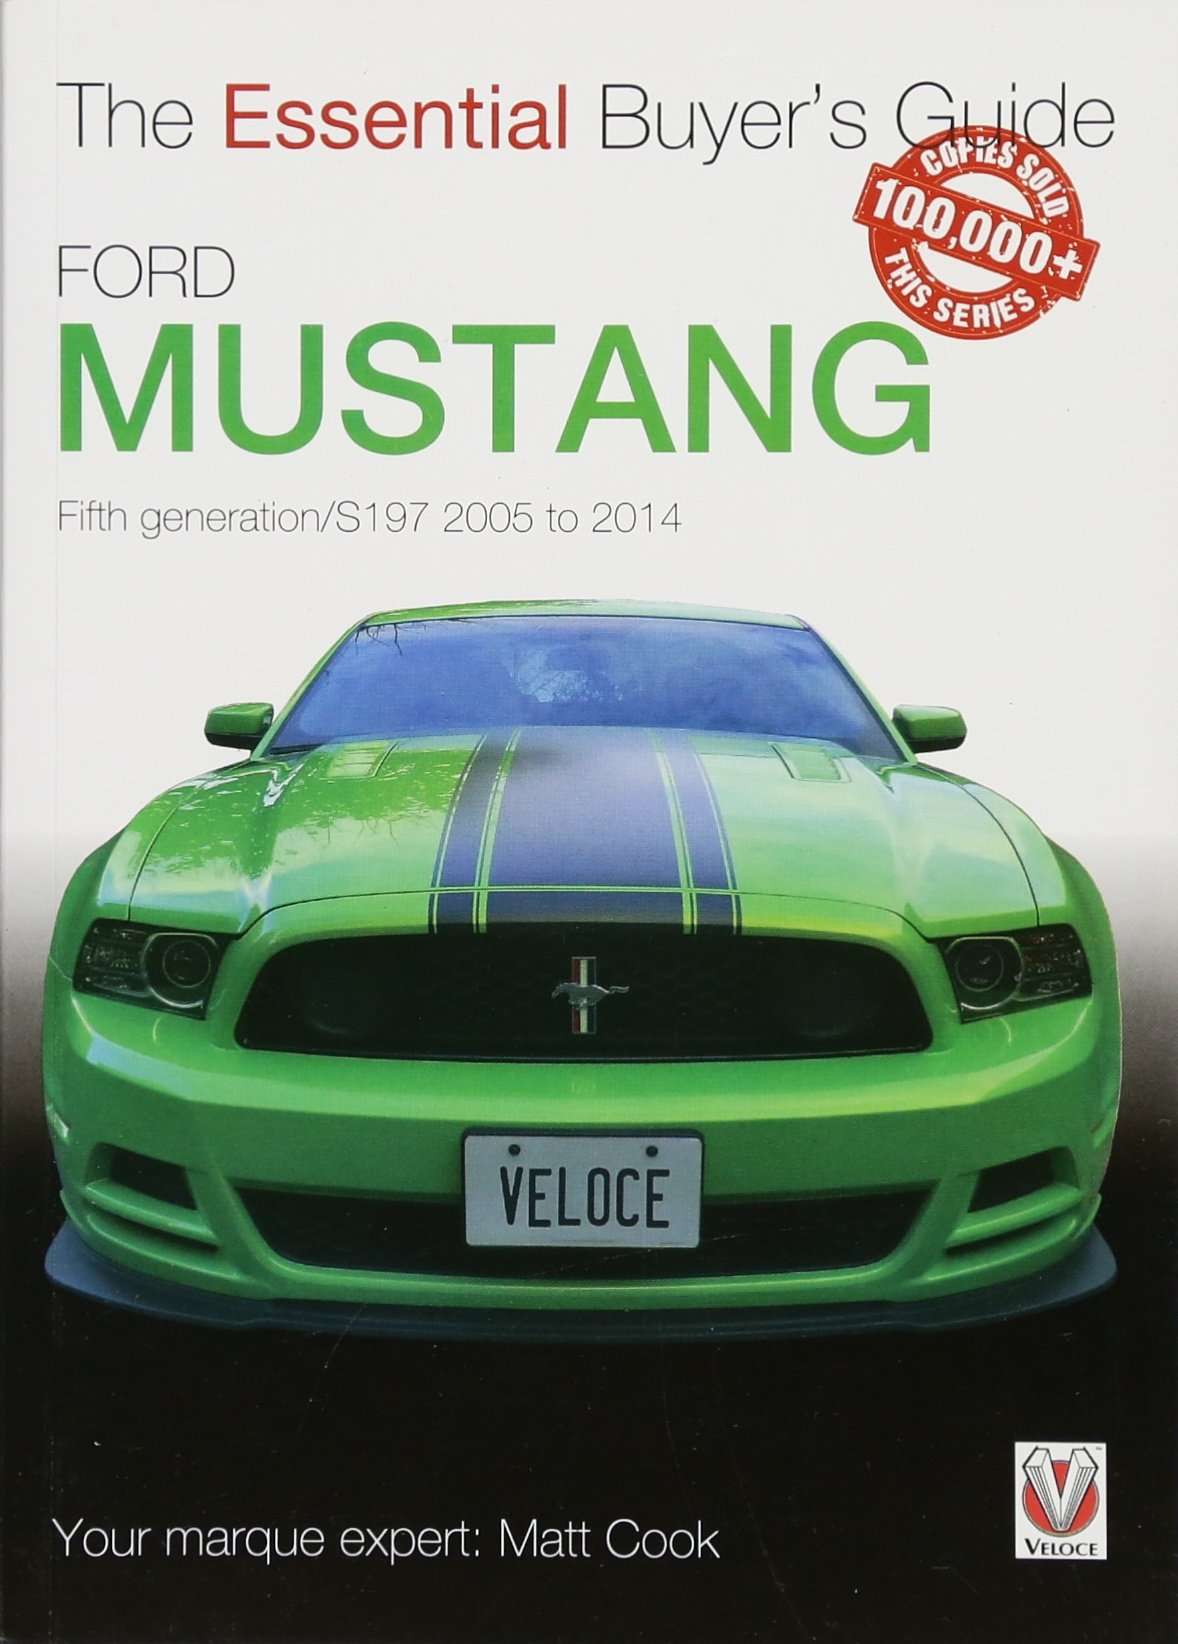 The Essential Buyers Guide Ford Mustang 5th Generation